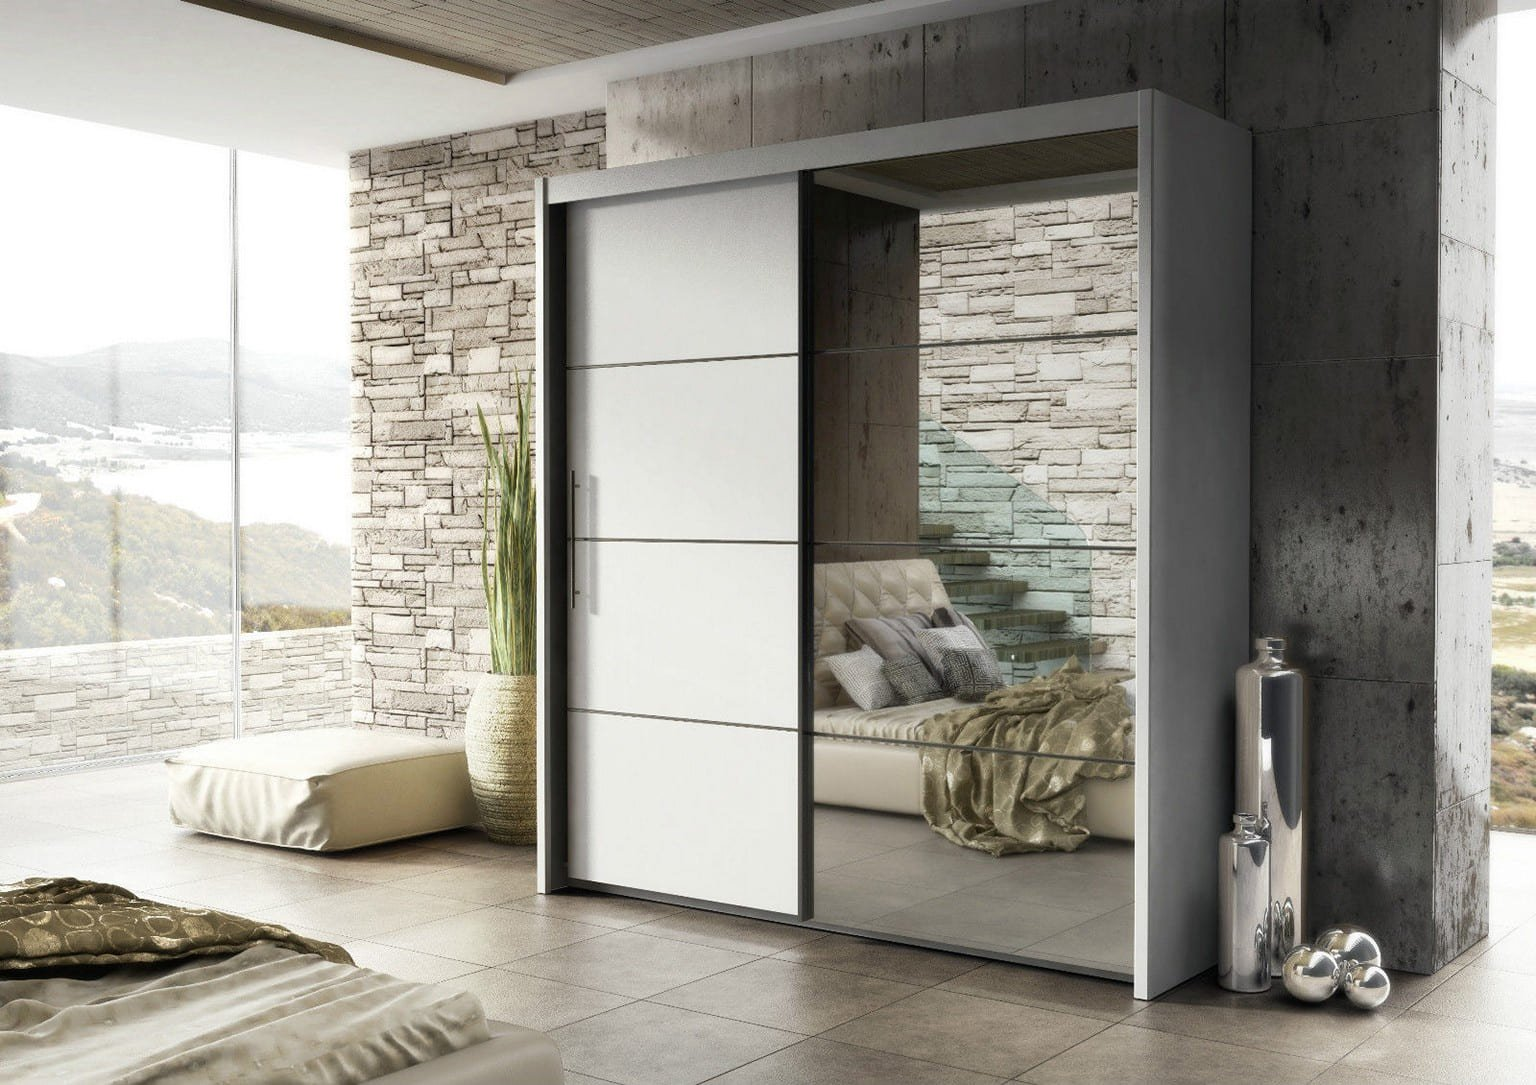 Simphome.com unique small bedroom clothes storage ideas with clothing storage for 2020 2021 and beyond